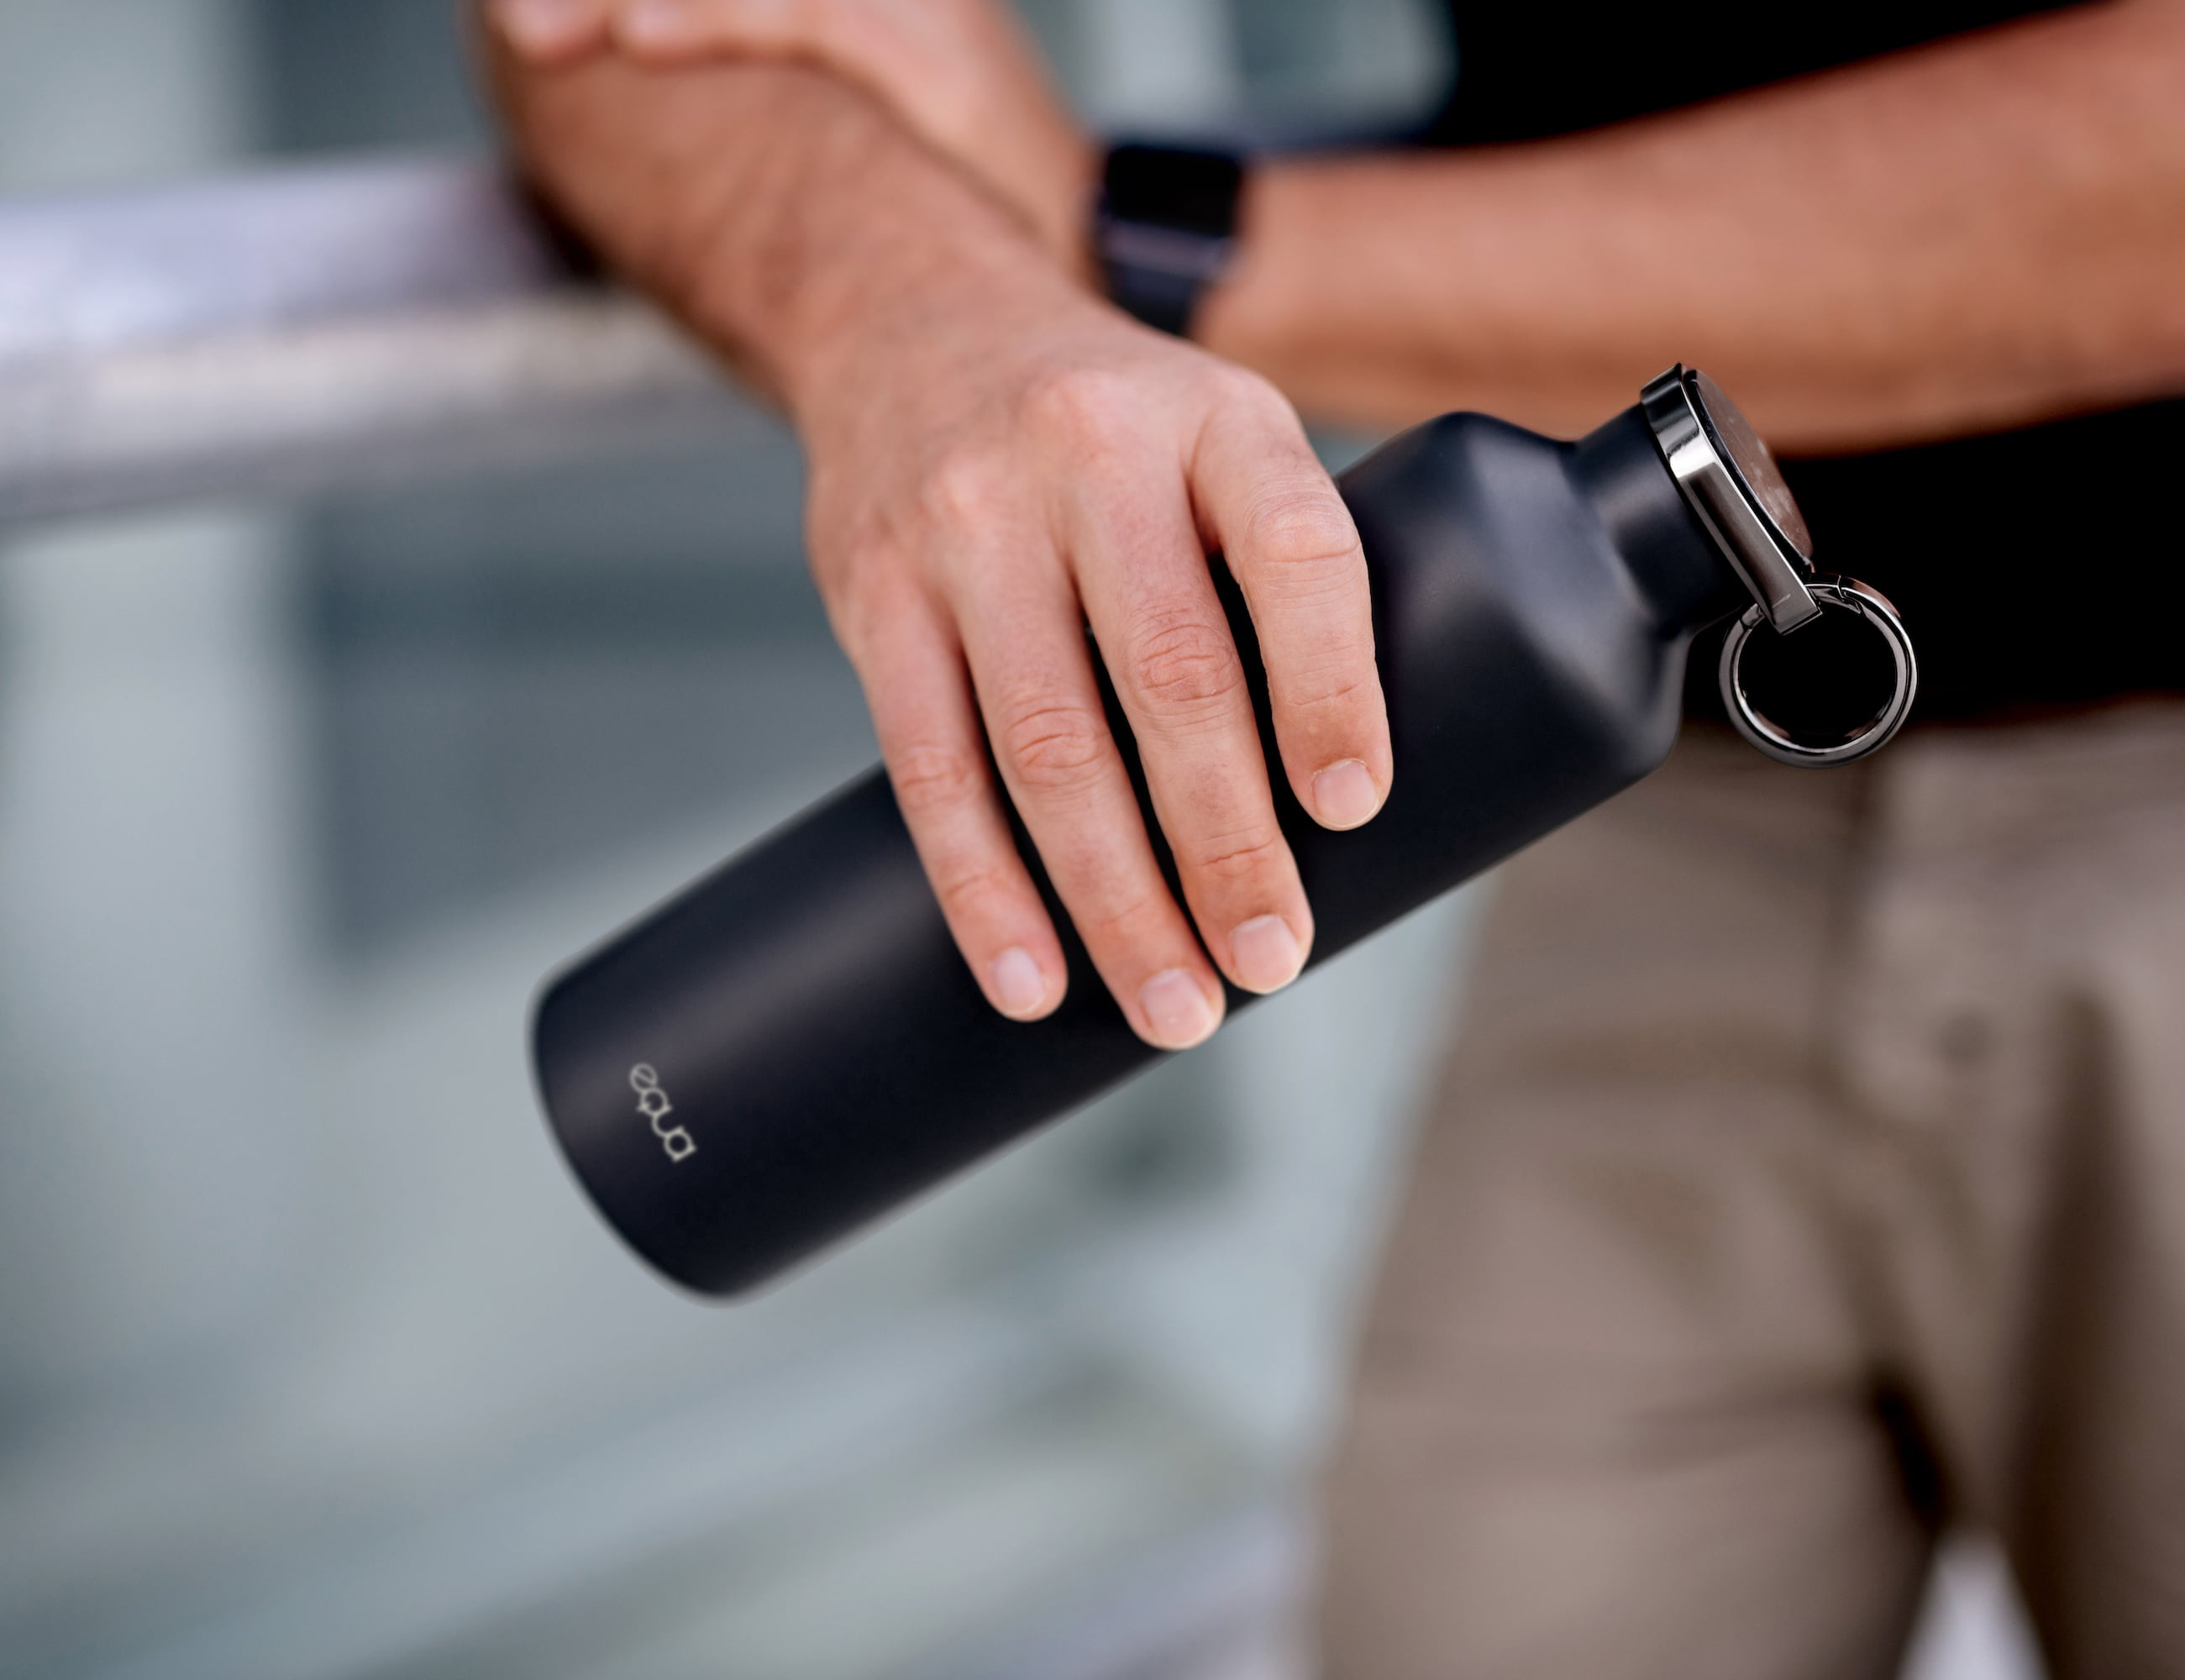 EQUA Smart Water Bottle knows just how hydrated you are